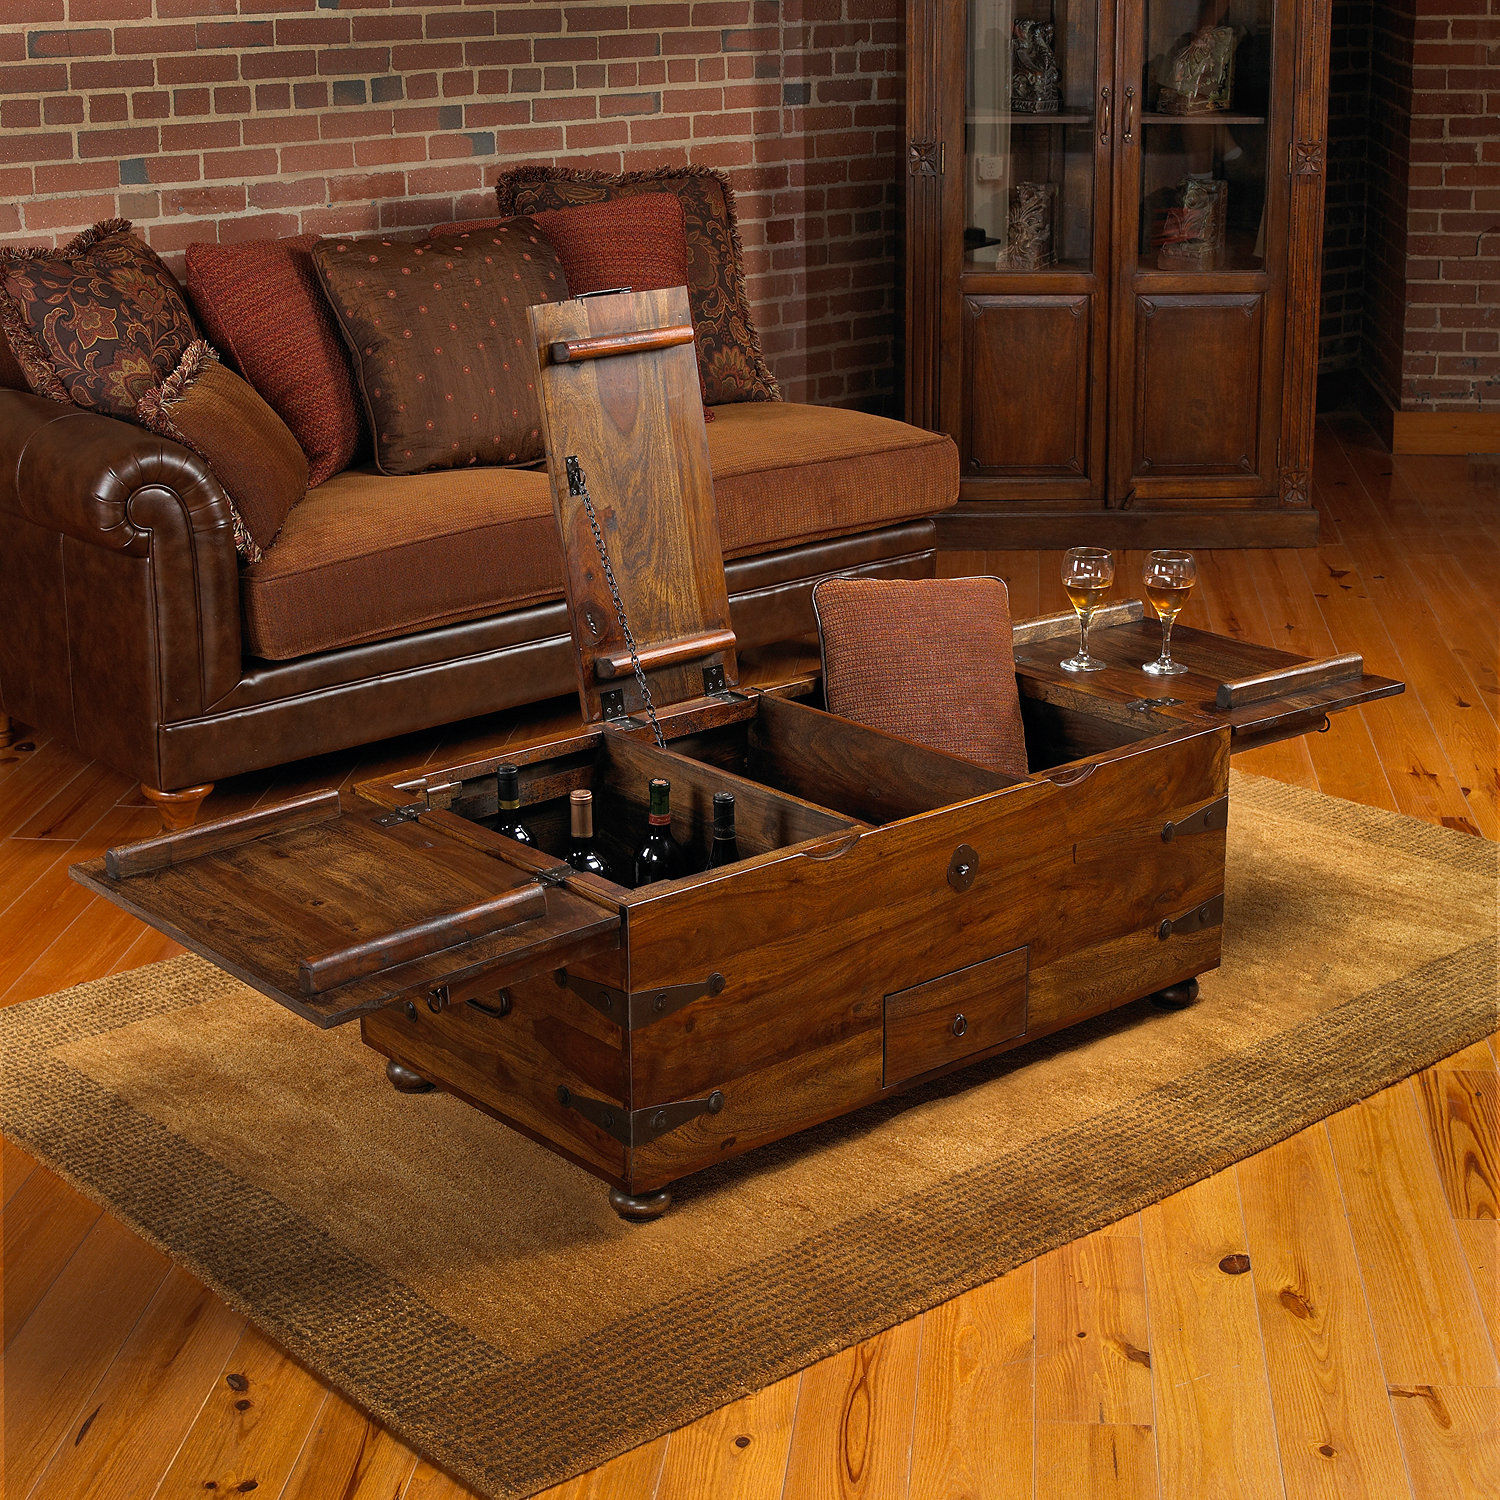 Preparing Zoom Thakat Bar Box Trunk Coffee Table  Wine Enthusiast